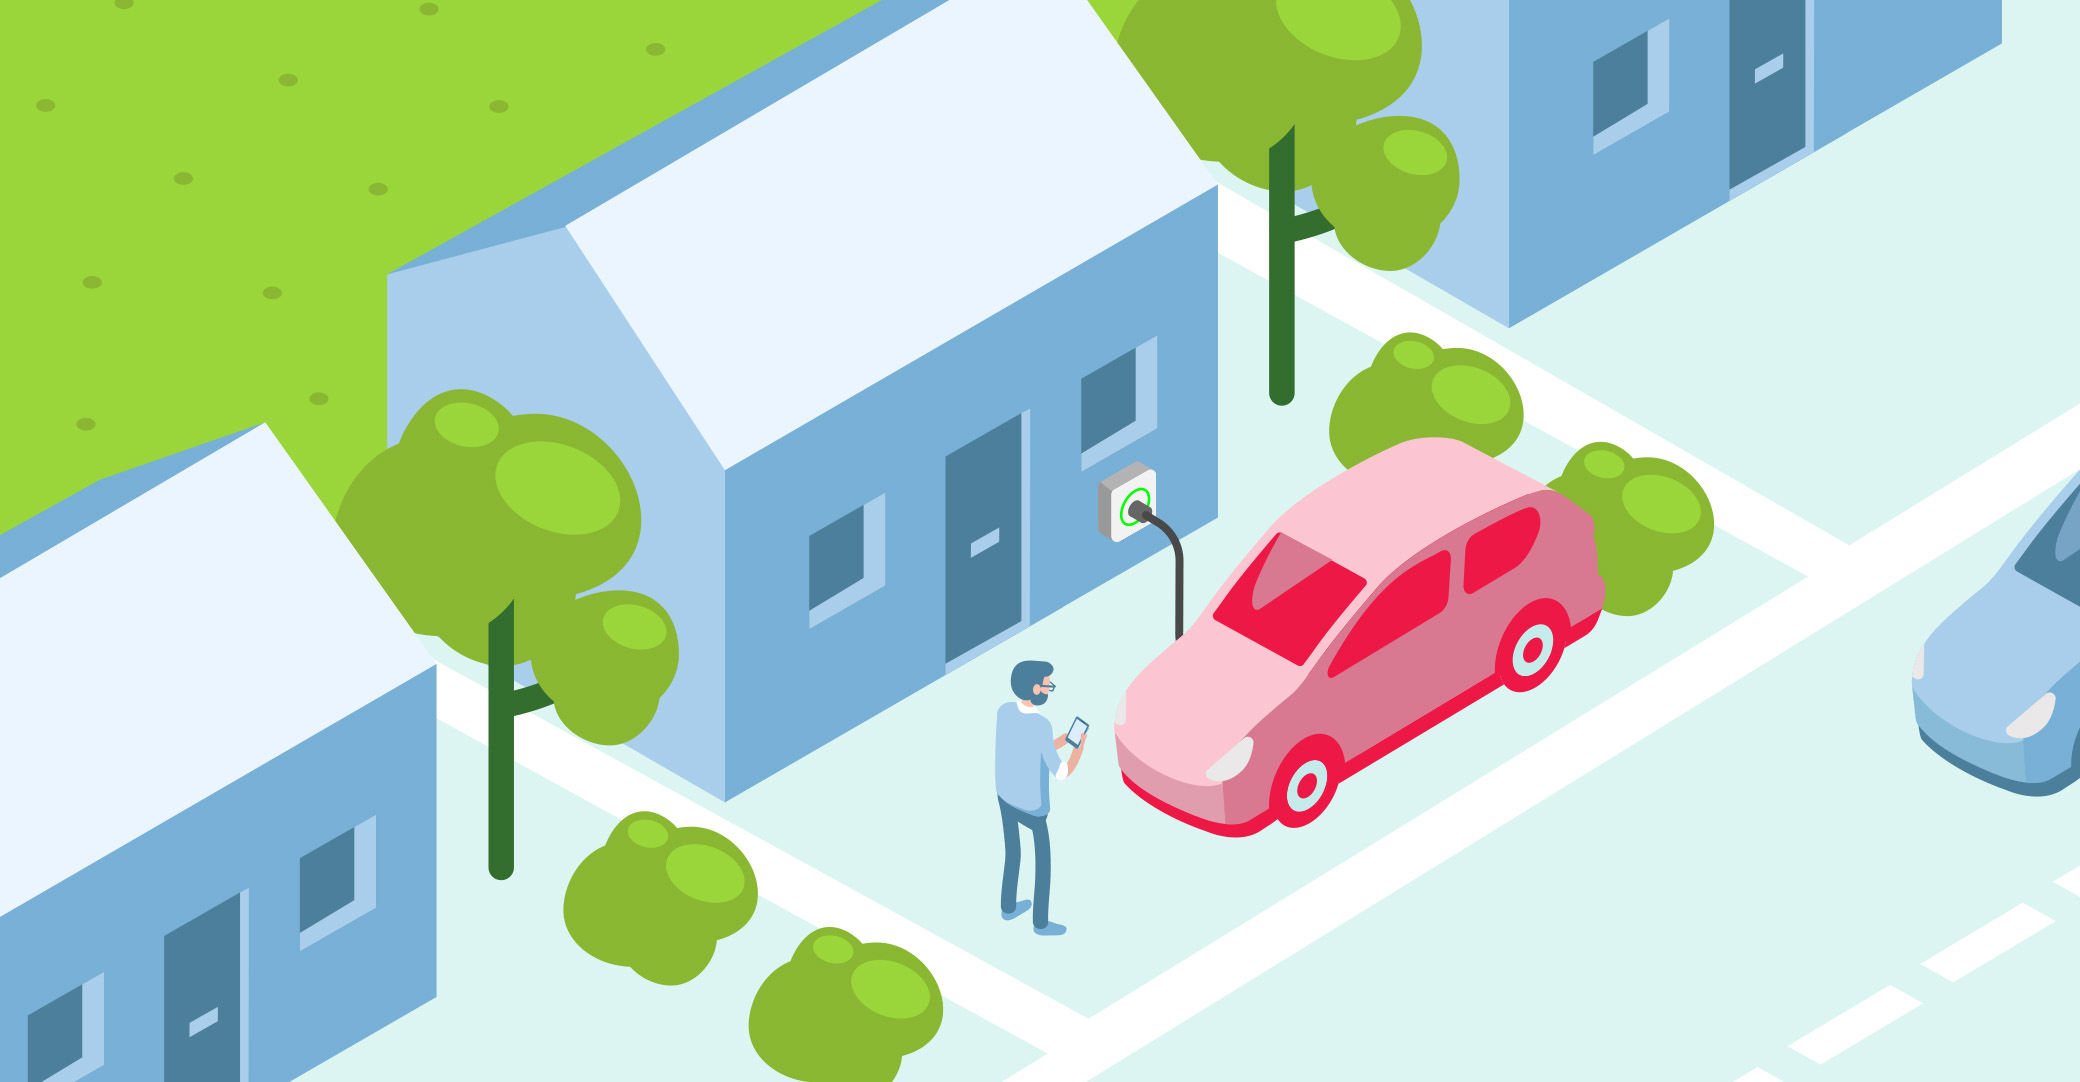 Choosing an EV – when you have your own driveway or garage